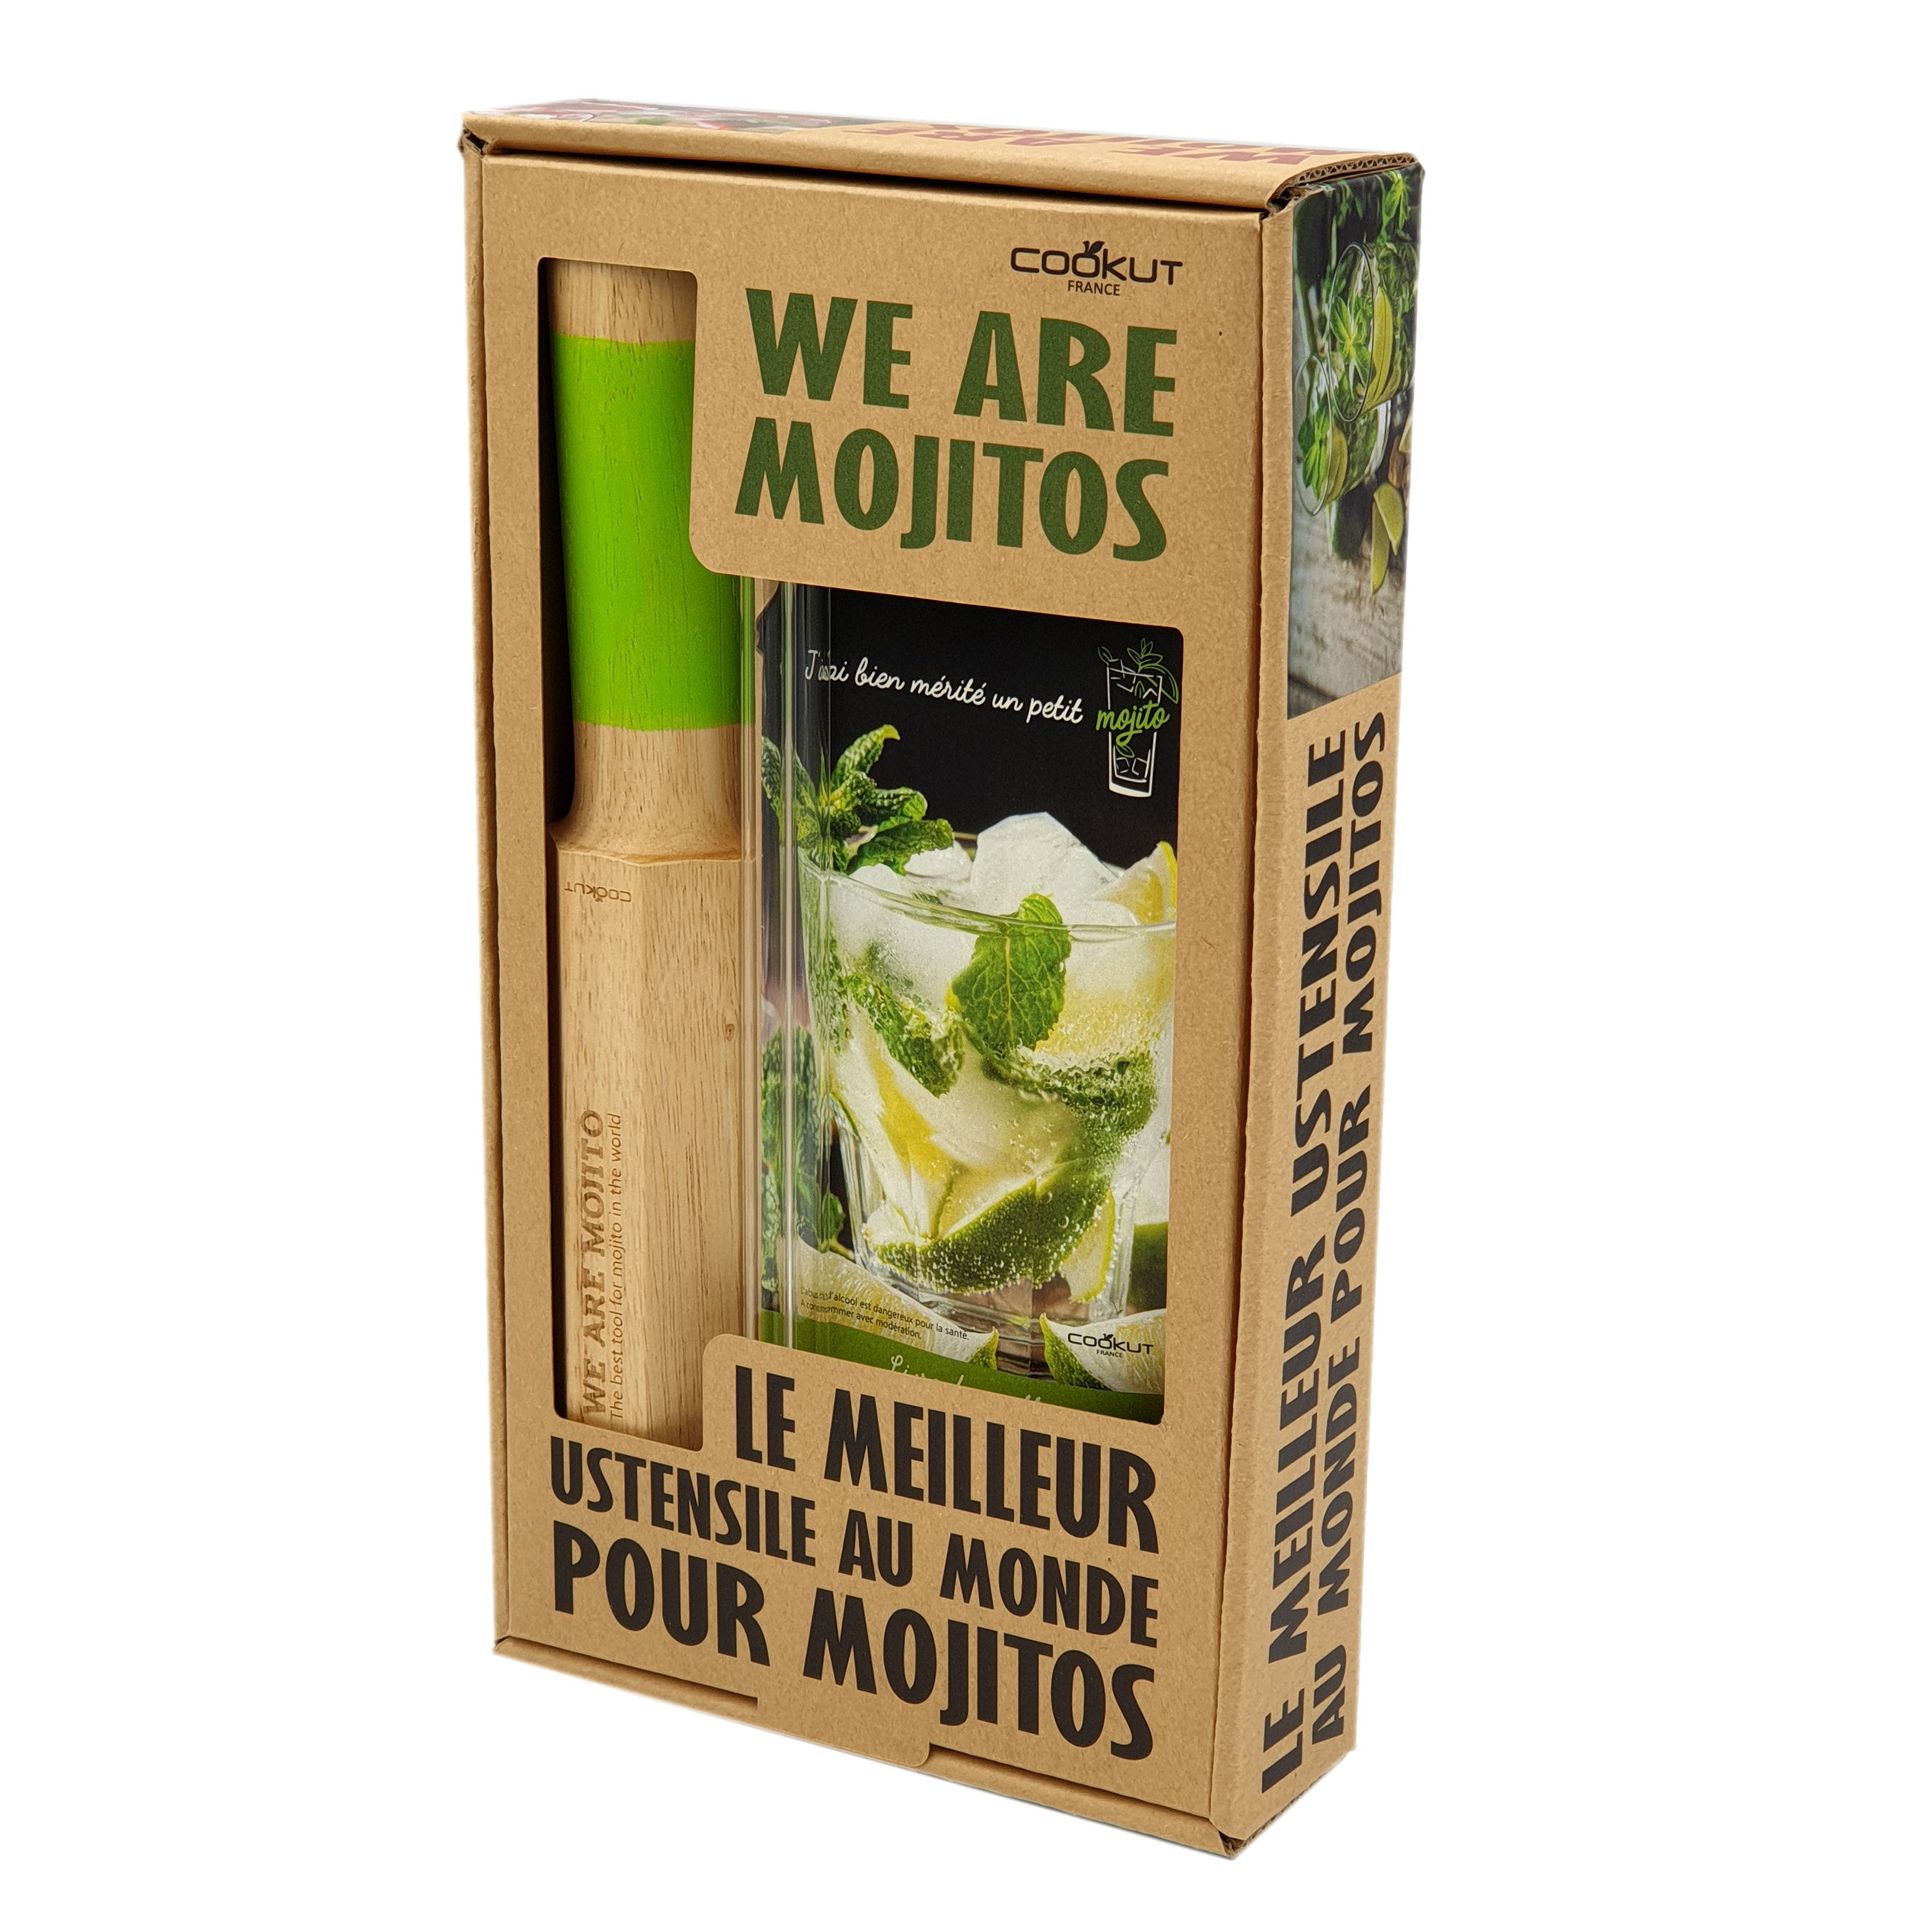 Tableware - Wine Accessories - We Are Mojitos Mojito set - / 4-in-1 pestle + recipe book + 2 glass straws by Cookut - Wood & green - Glass, Hérable massif